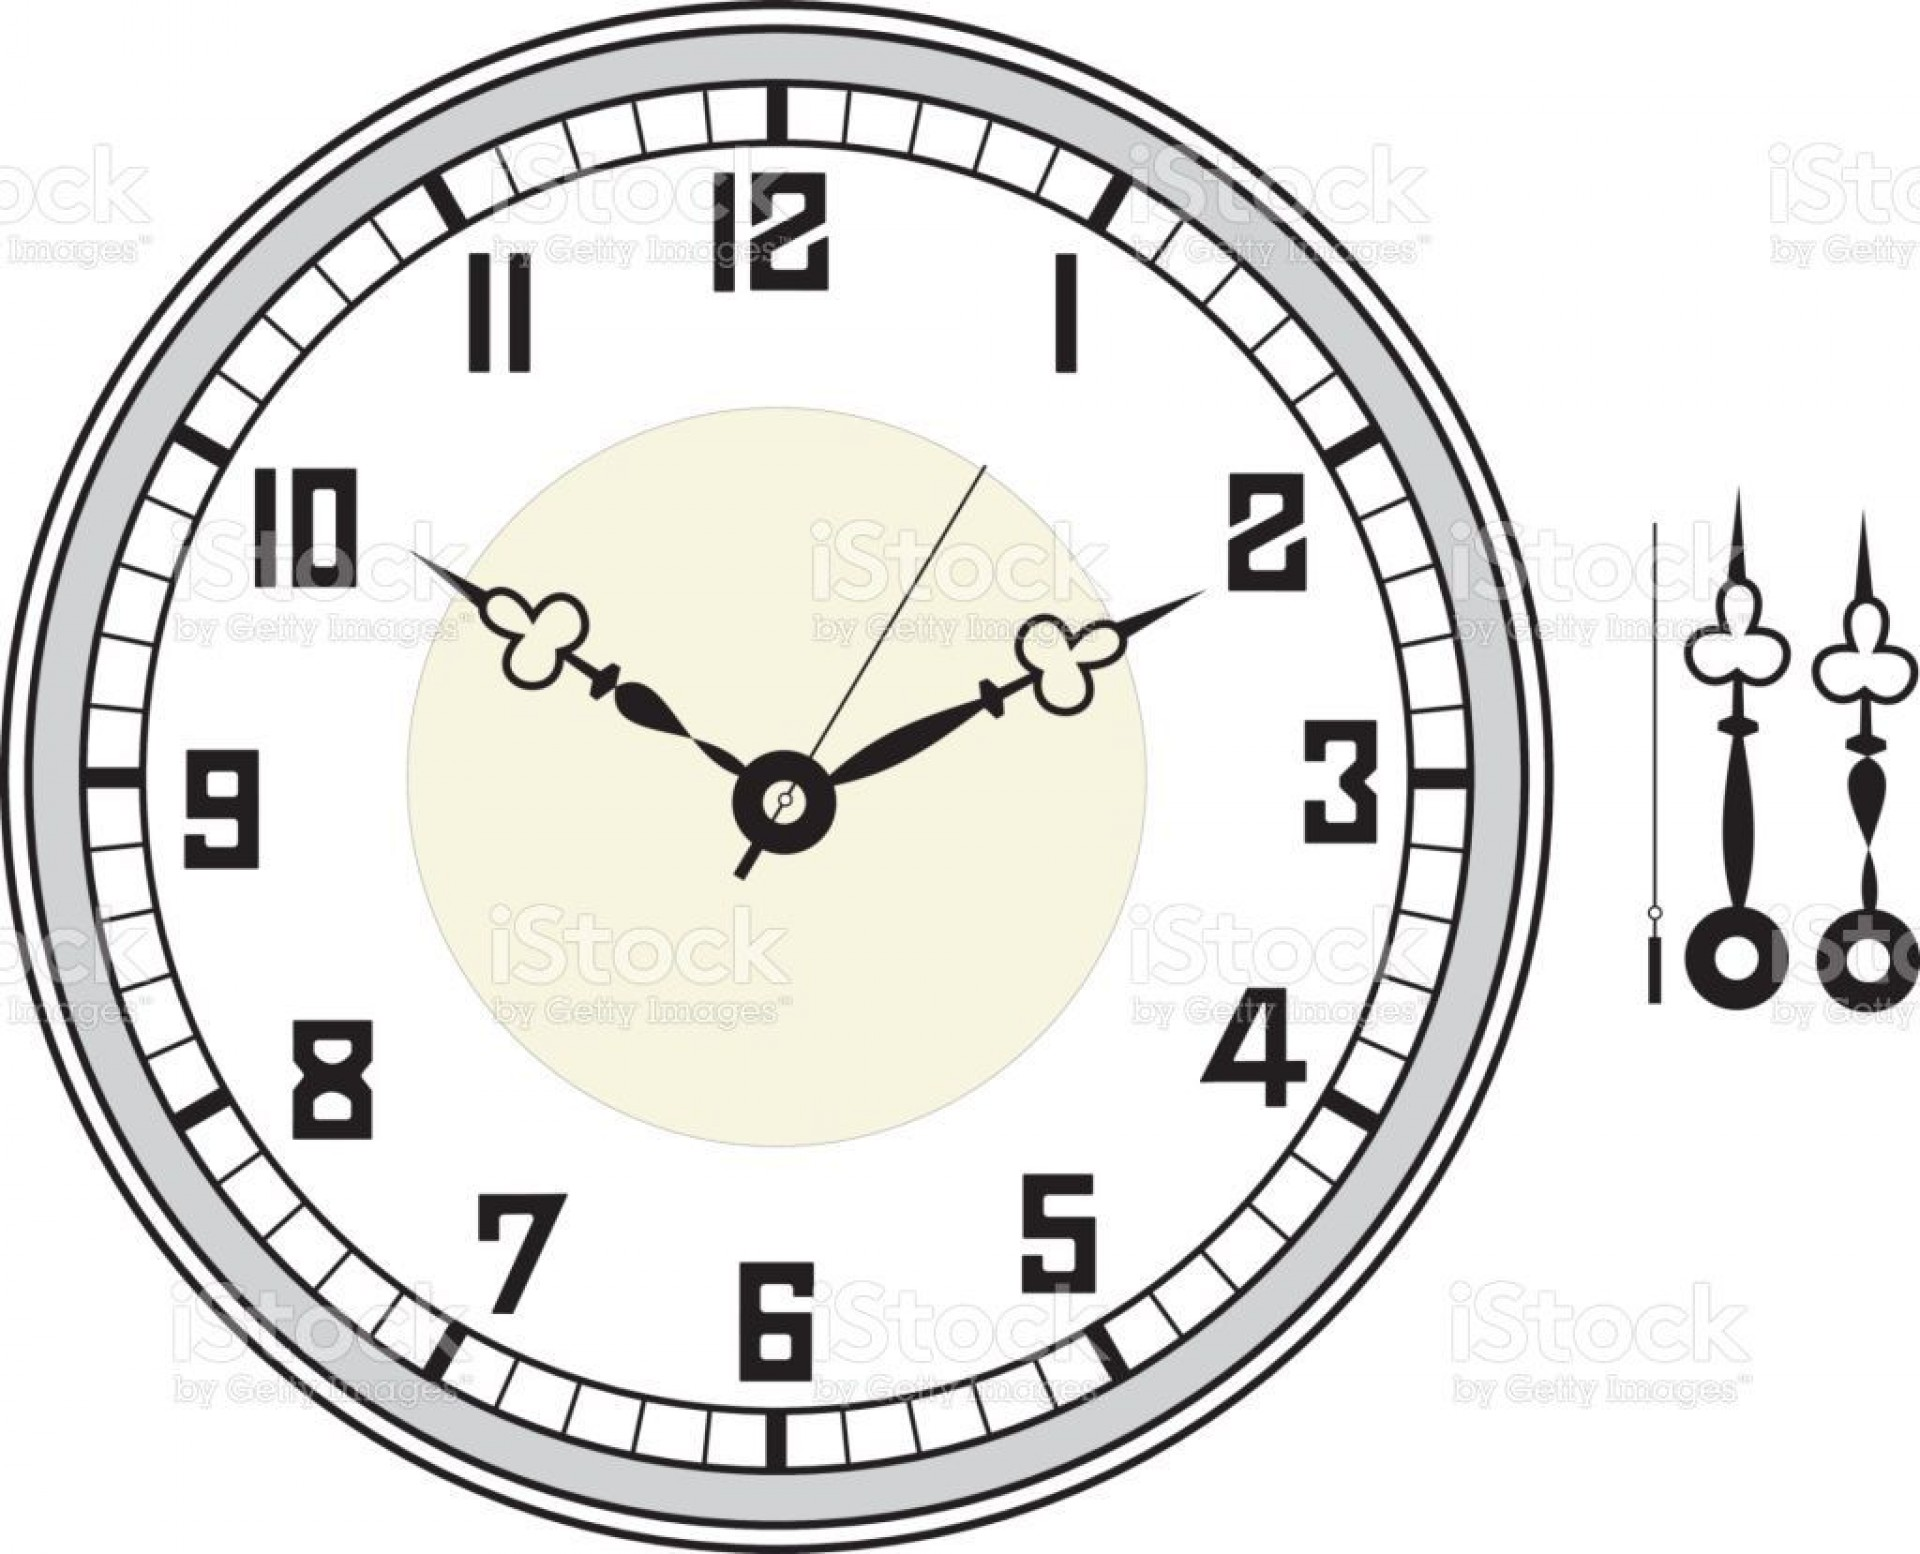 005 Unbelievable Customizable Clock Face Template Picture 1920